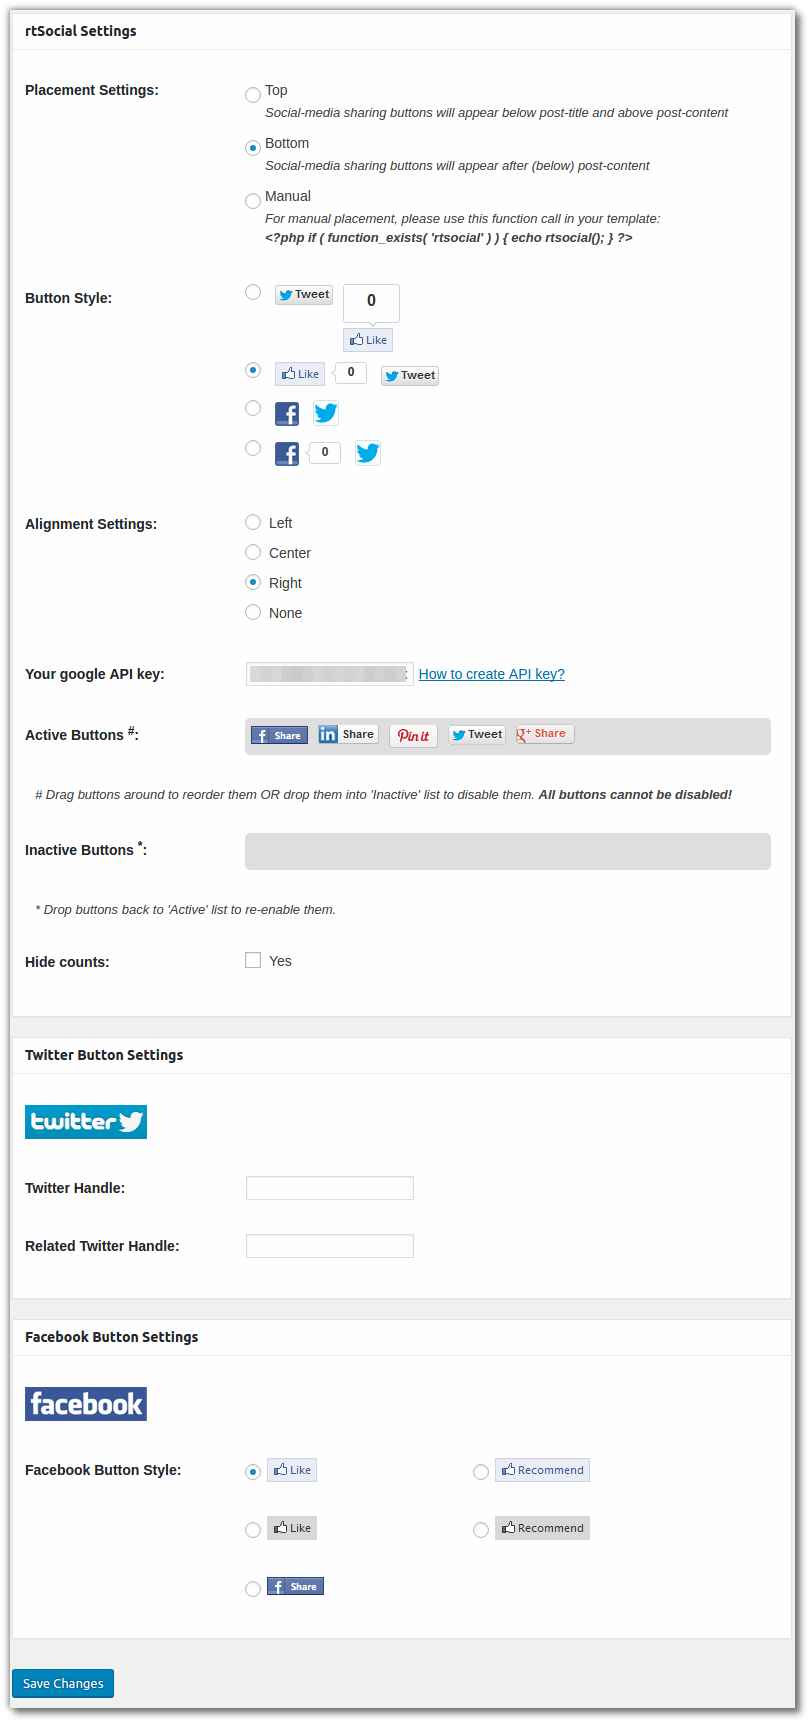 rtsocial-admin-setting-screen